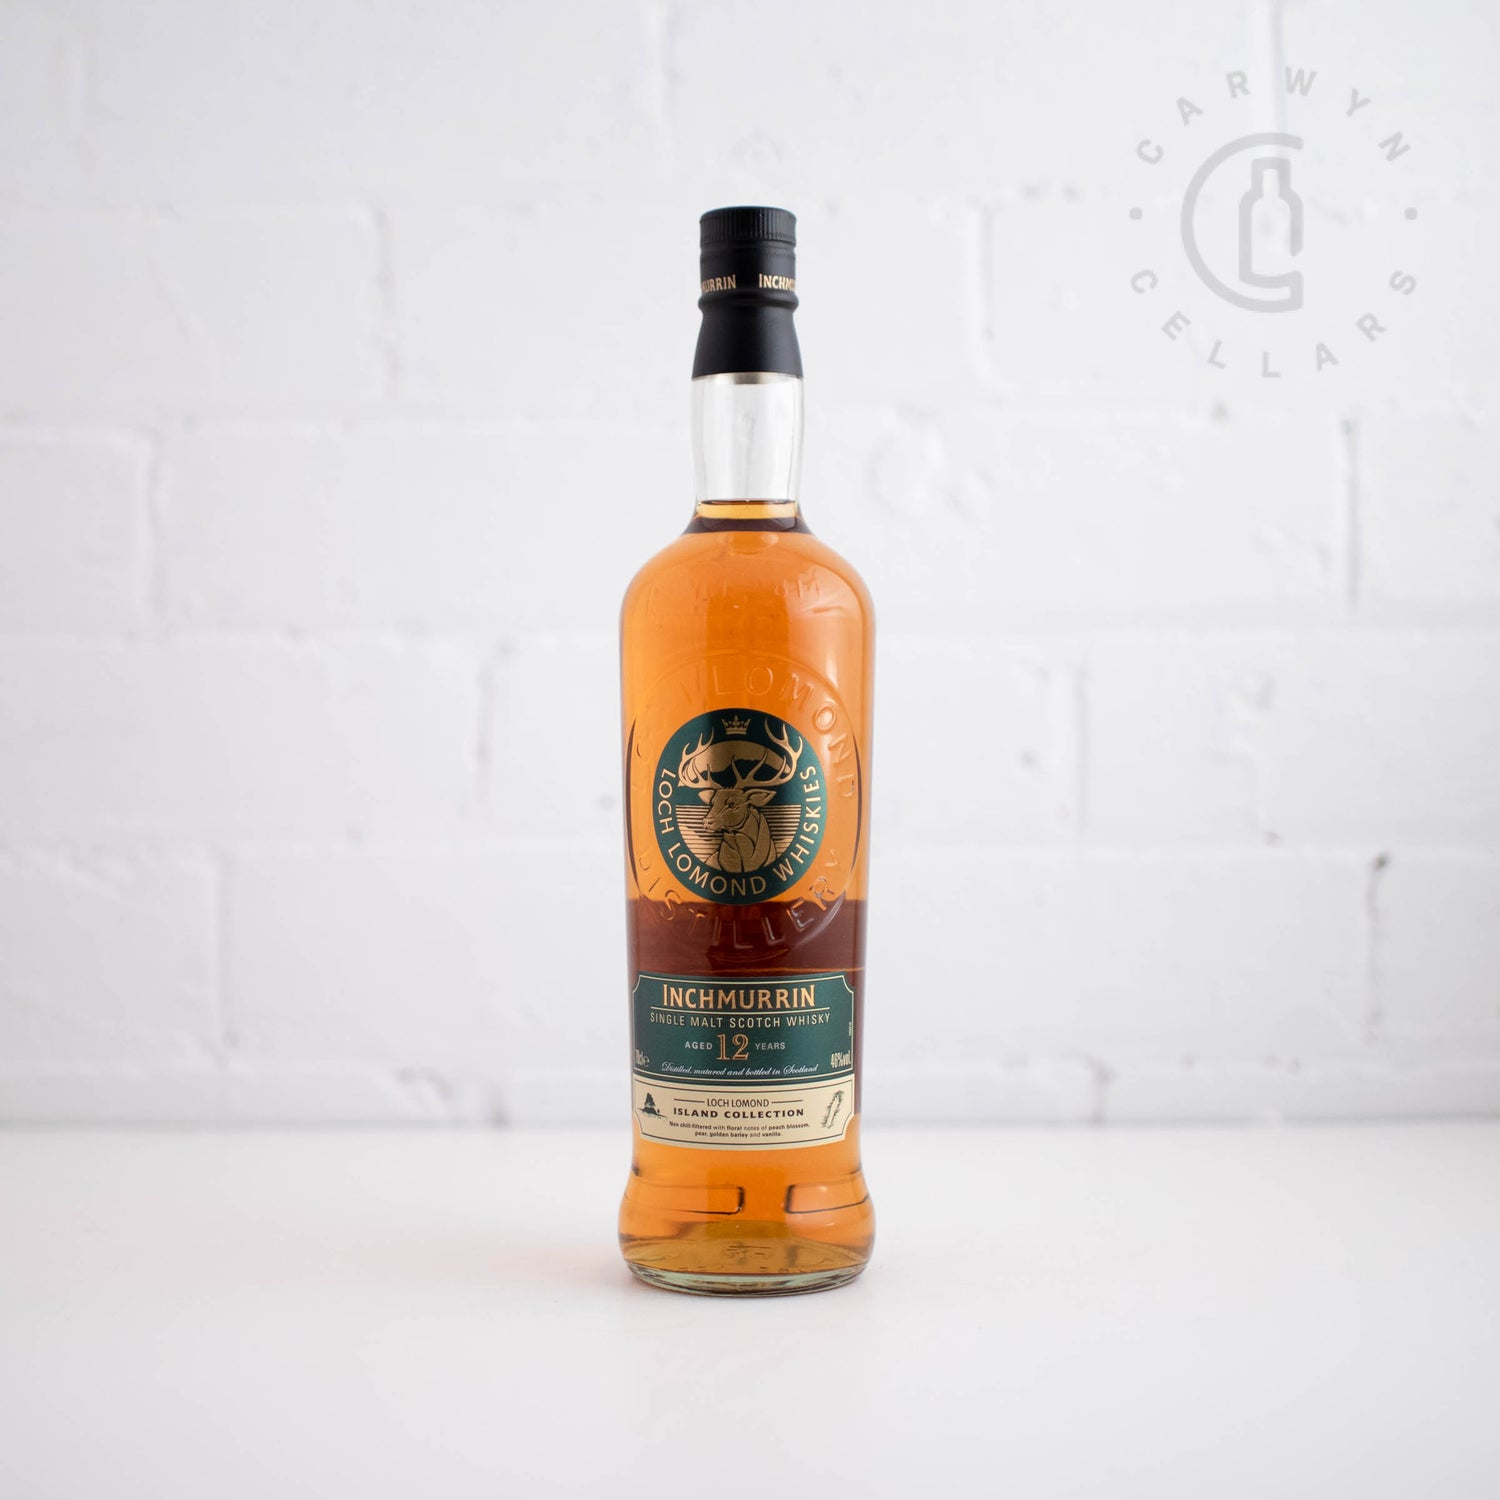 Loch Lomond Inchmurrin 12YO 700ml